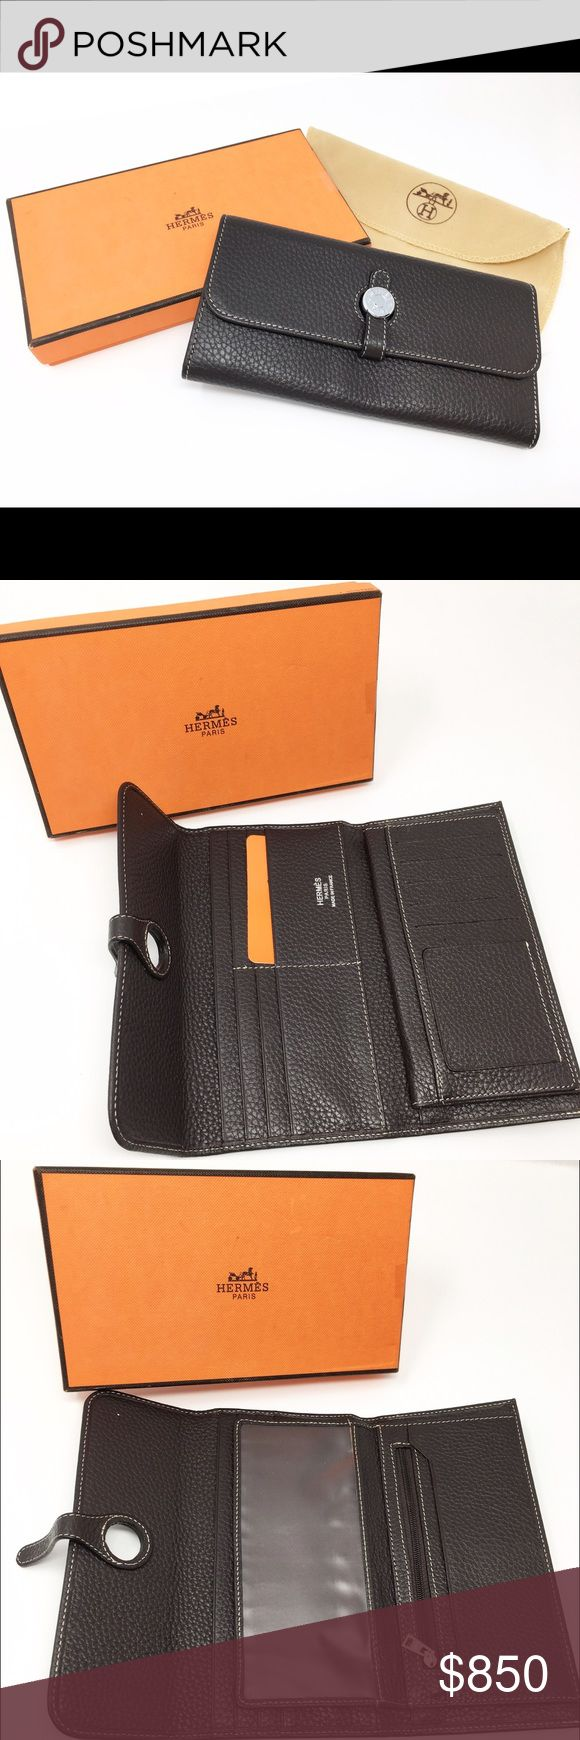 Hermes Wallet Authentic with Box & Dustbag Brand New! Leather Brown Hermes Wallet. Comes with 1 Hermes Wallet, 1 Hermes Box, 1 Hermes DustBag. ✨no trading at this time✨ Hermes Accessories Key & Card Holders